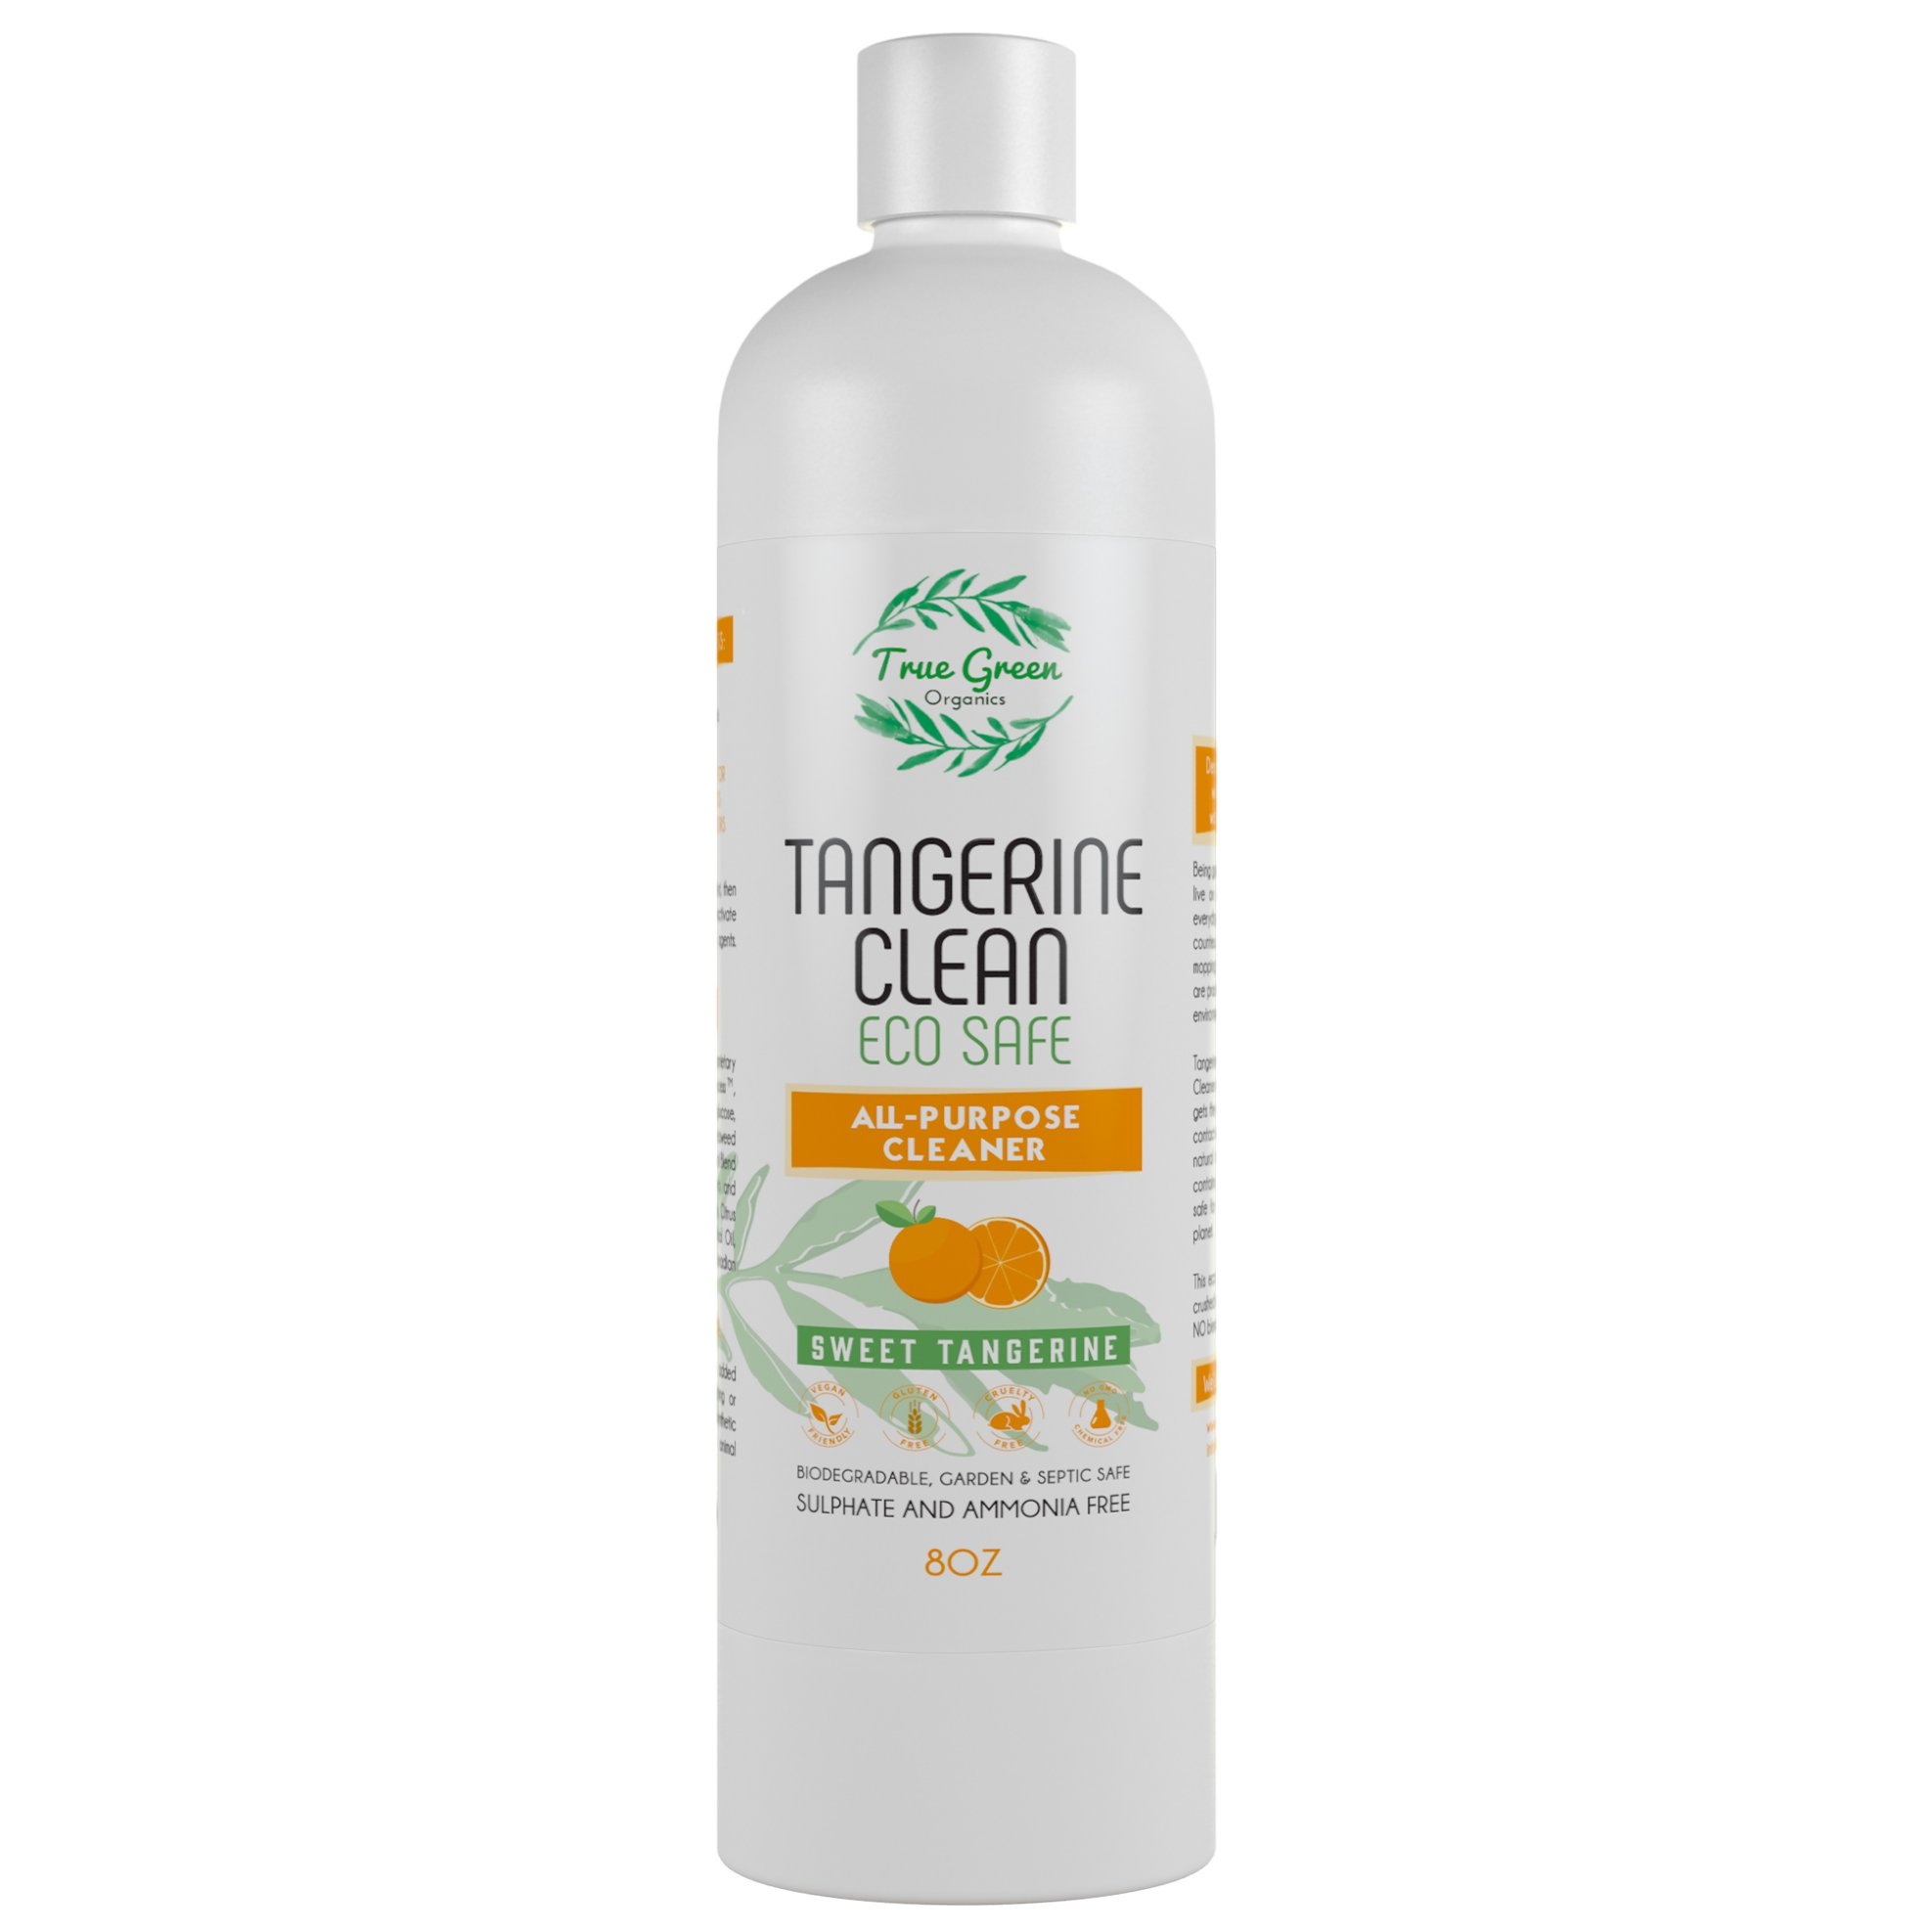 100% Organic All Purpose Cleaner Concentrate by True Green Organics, Non Toxic All Natural Ingredients, Kitchen, Bathroom, Multi Surface Cleaning, Glass, Floors, Window, Tangerine Scent [8 Ounces]